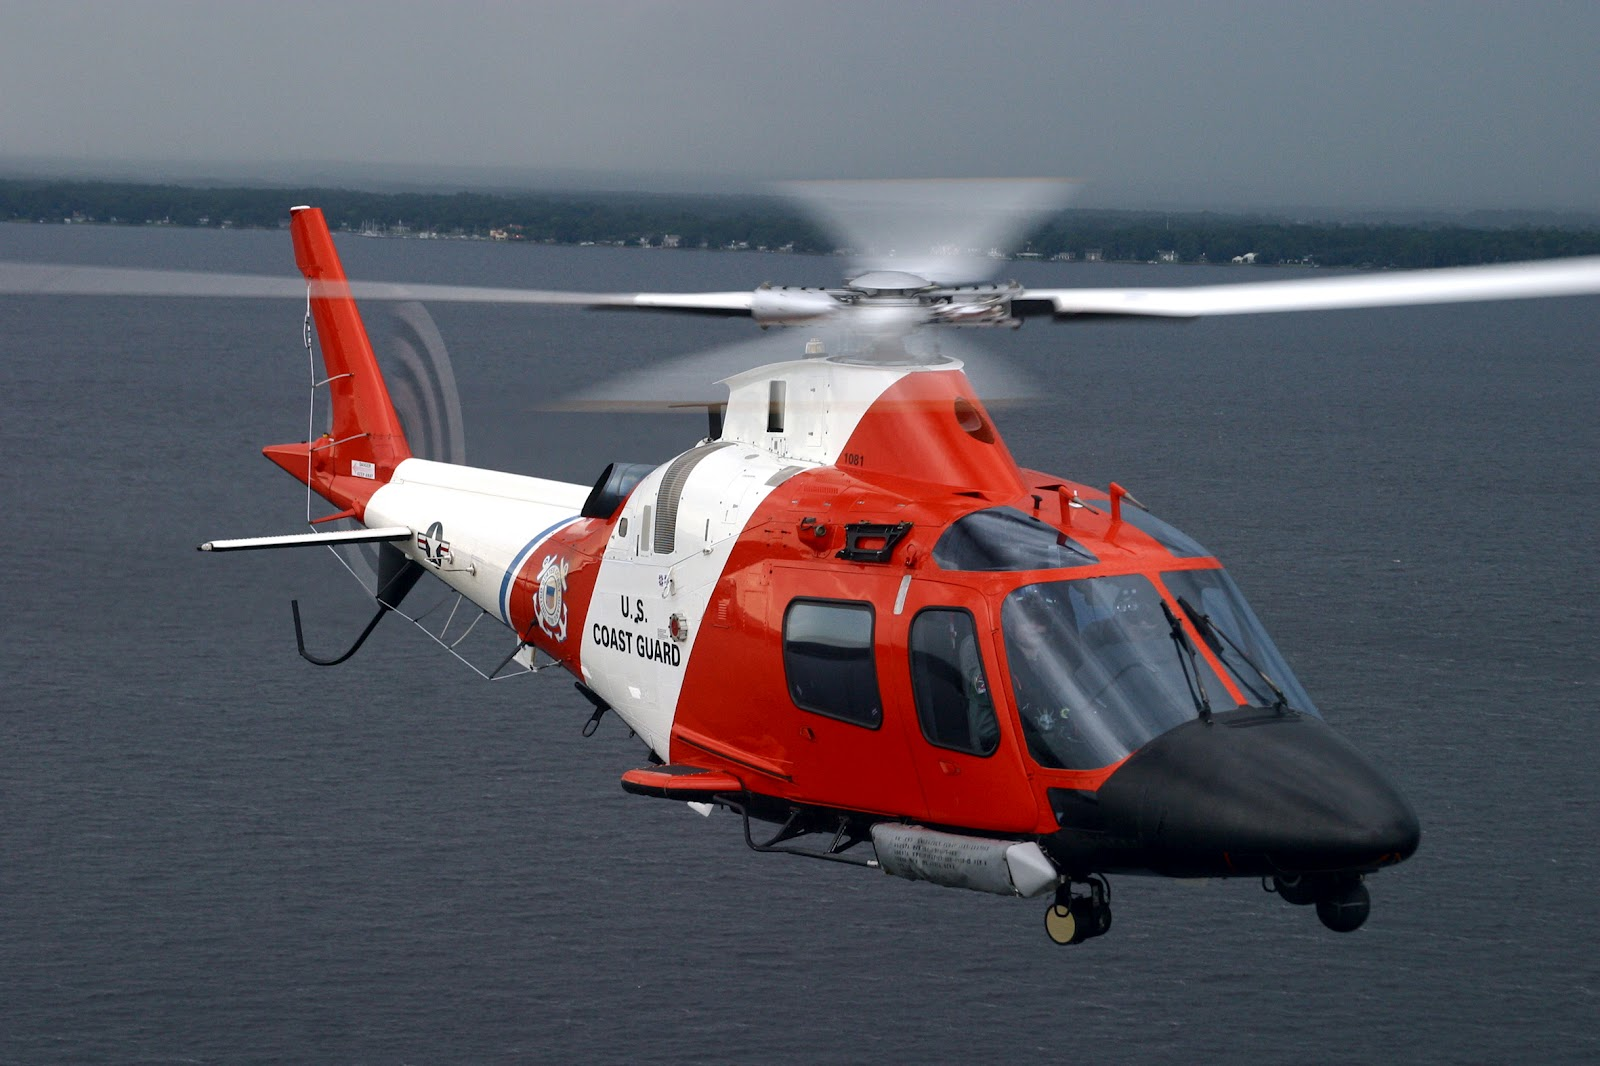 Helicopters Hd Wallpaper 2   SA Wallpapers 1600x1066